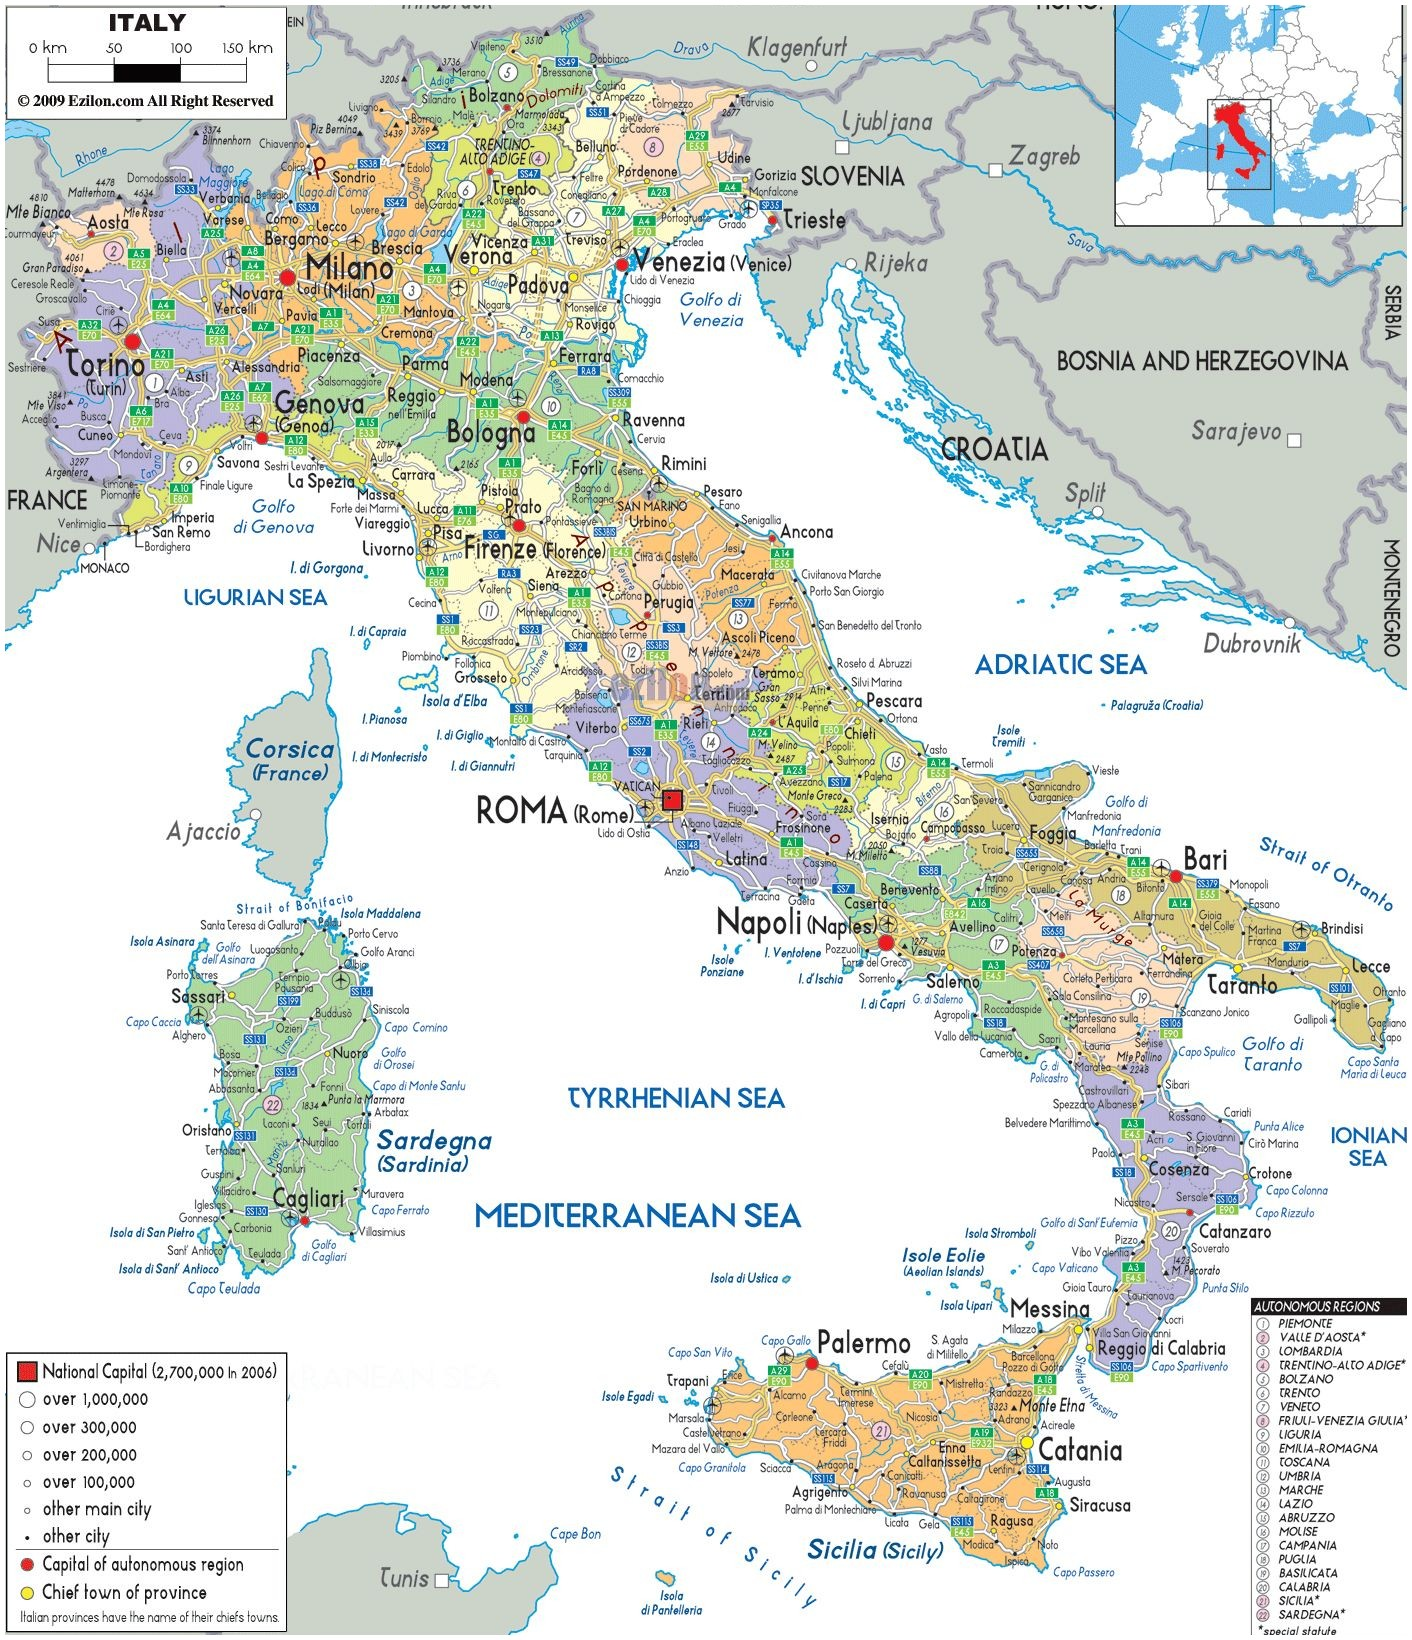 Beach Resorts Italy Map Elegant Map Italy with Cities